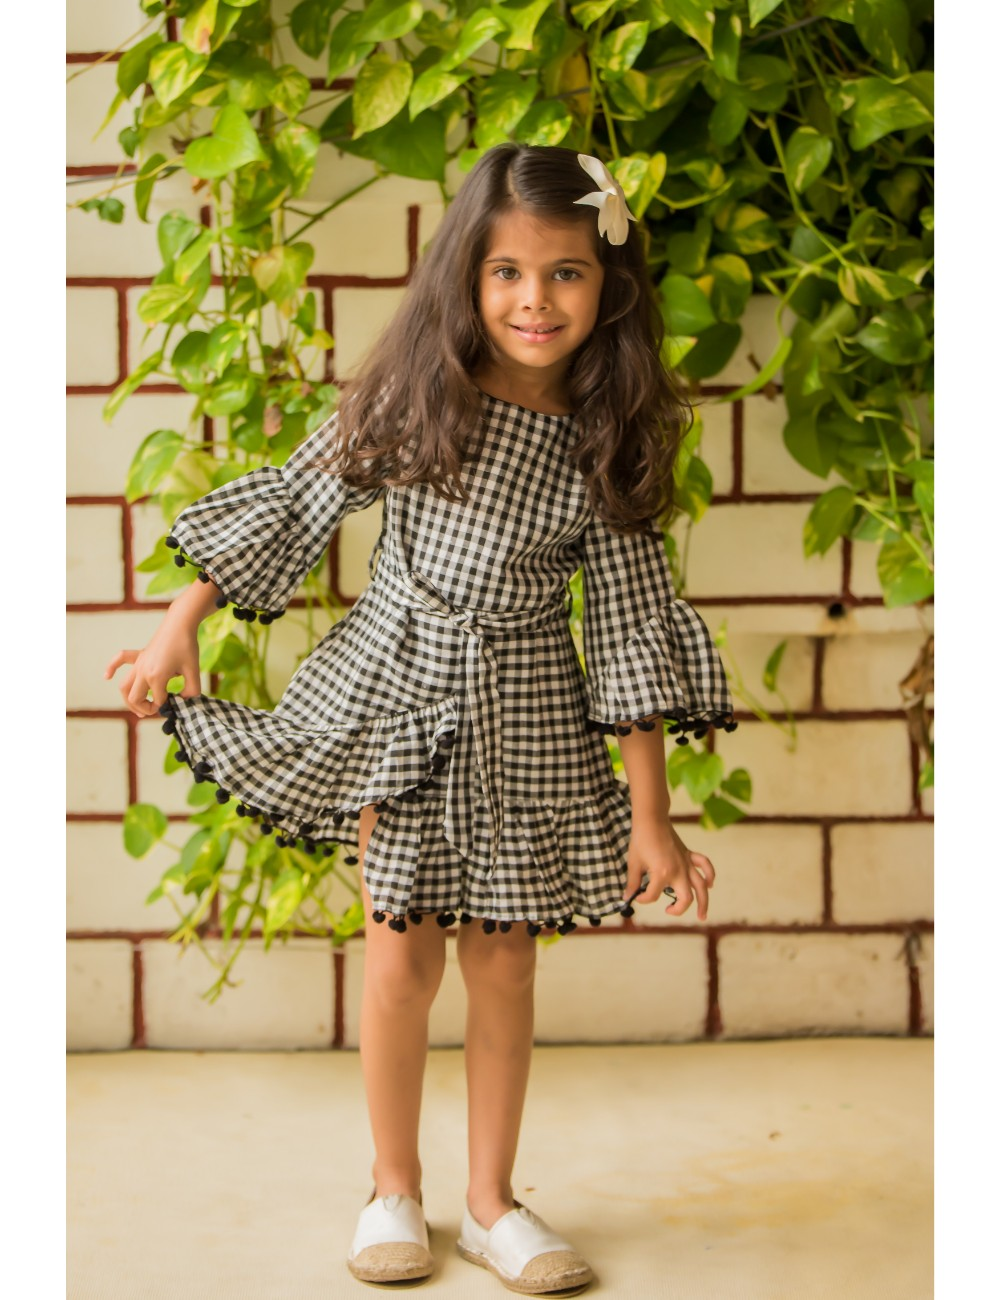 c7ebb7489 Girls Clothing - Buy Latest Girls Clothes Online at Low Prices